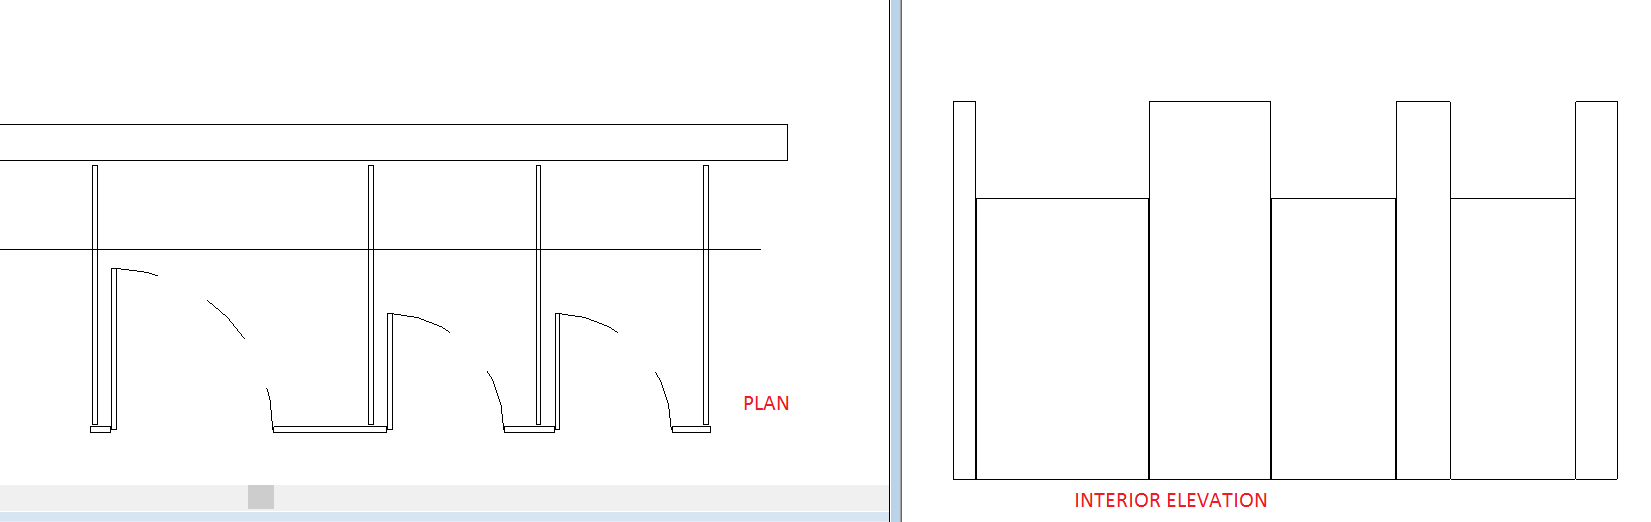 Solved: Creating toilet partition family - Autodesk Community